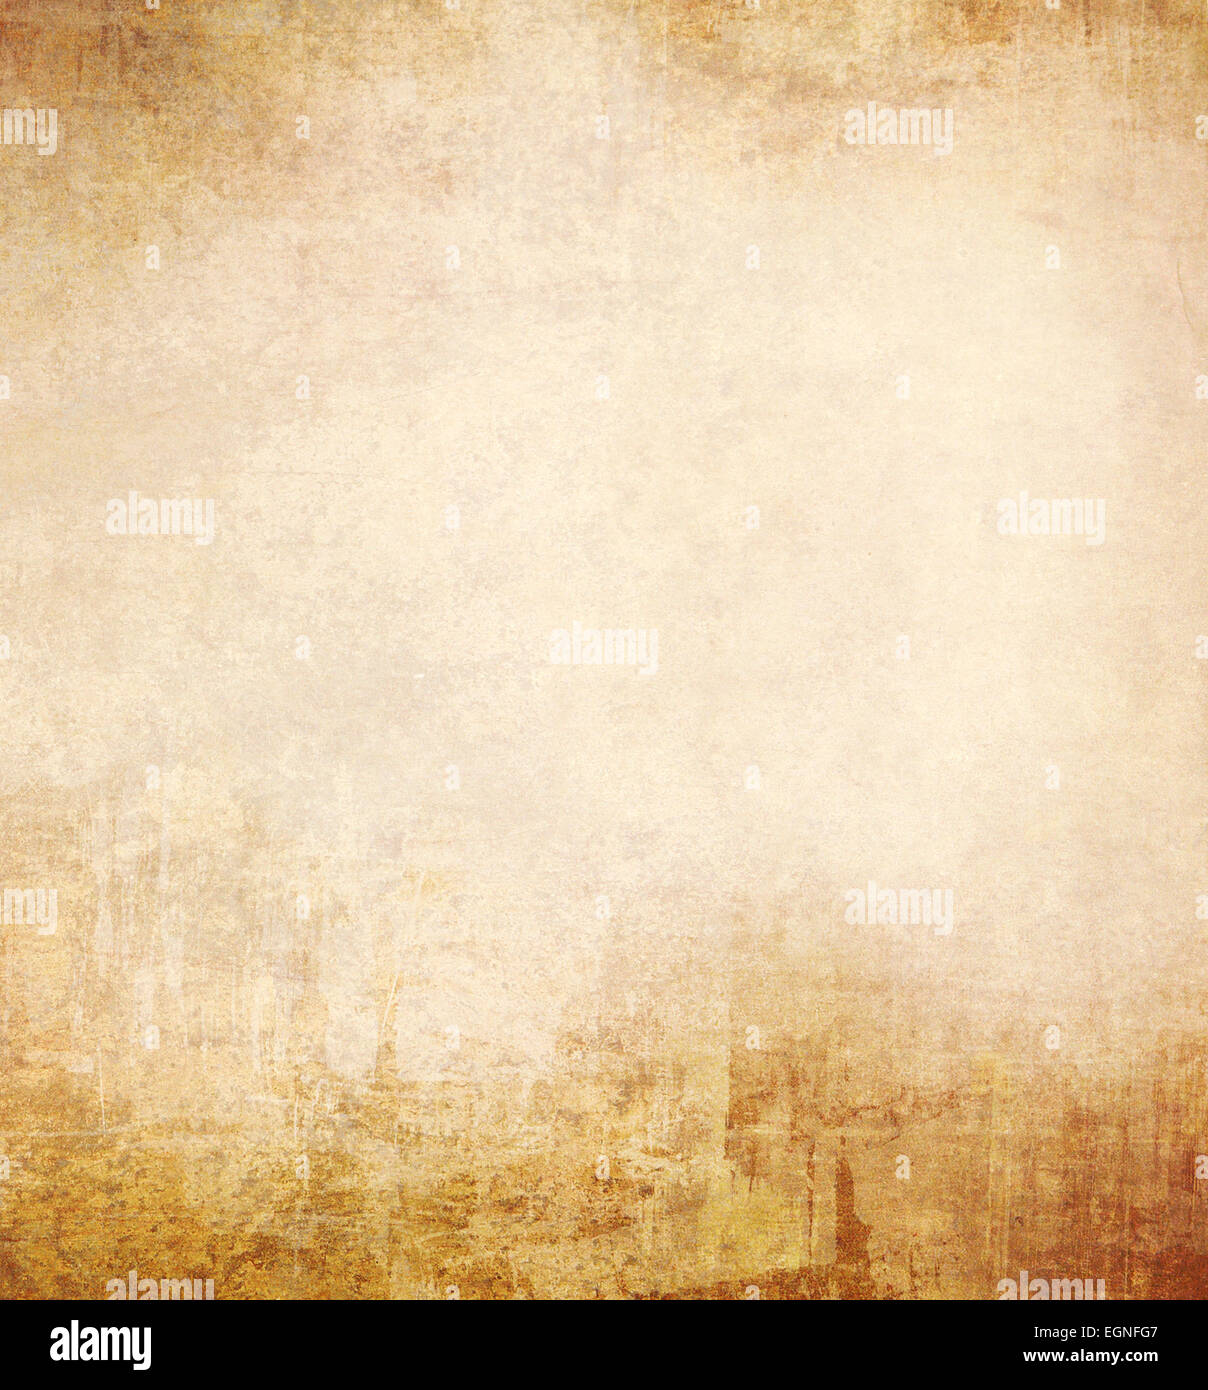 Parchment texture. Old blank sheet of paper. Abstract grunge background - Stock Image